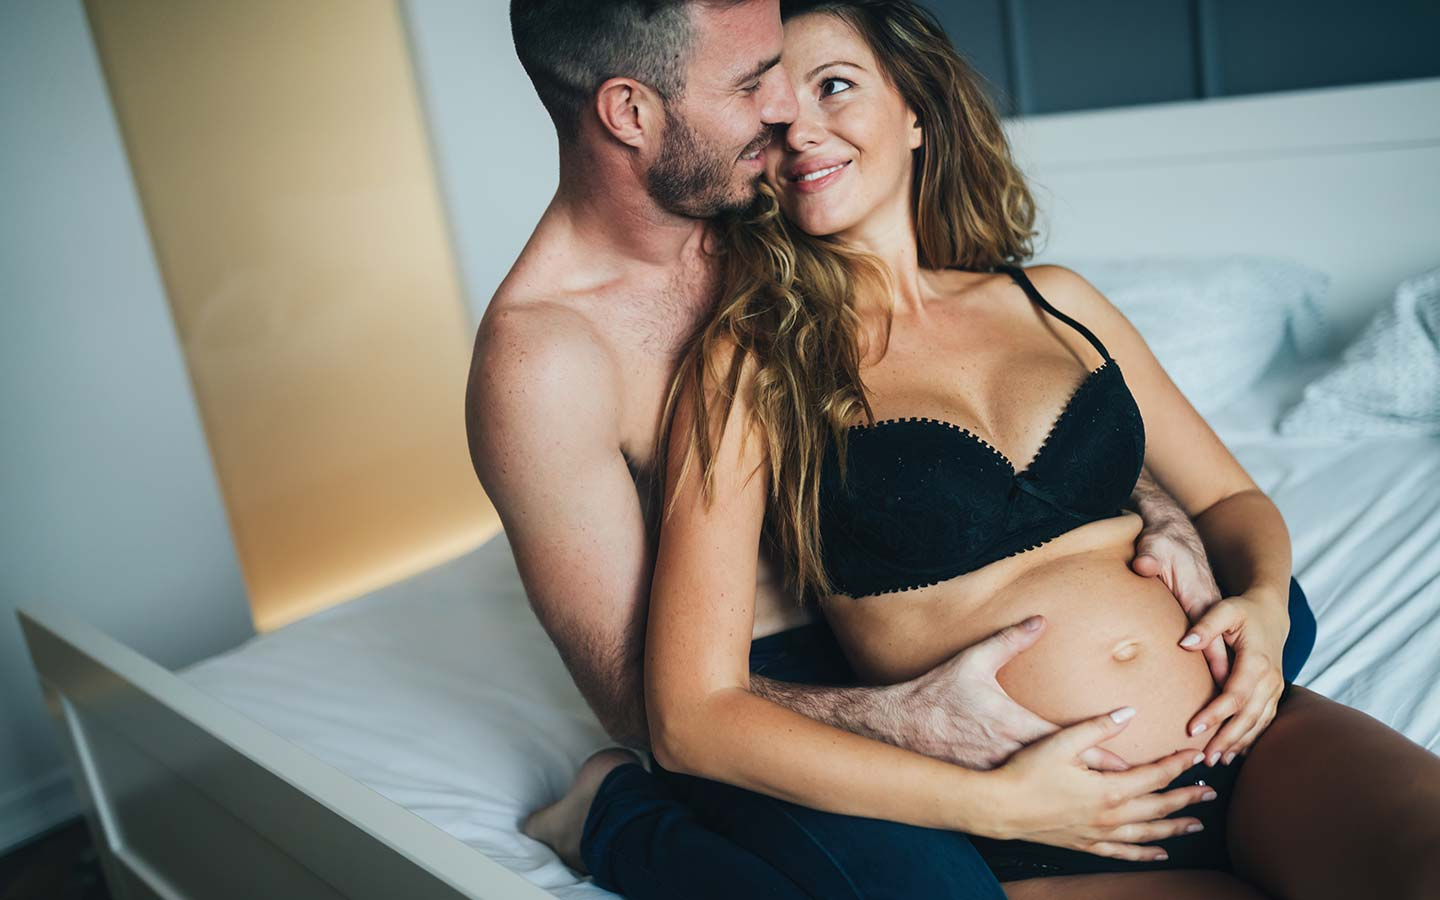 Can I have sex while pregnant?